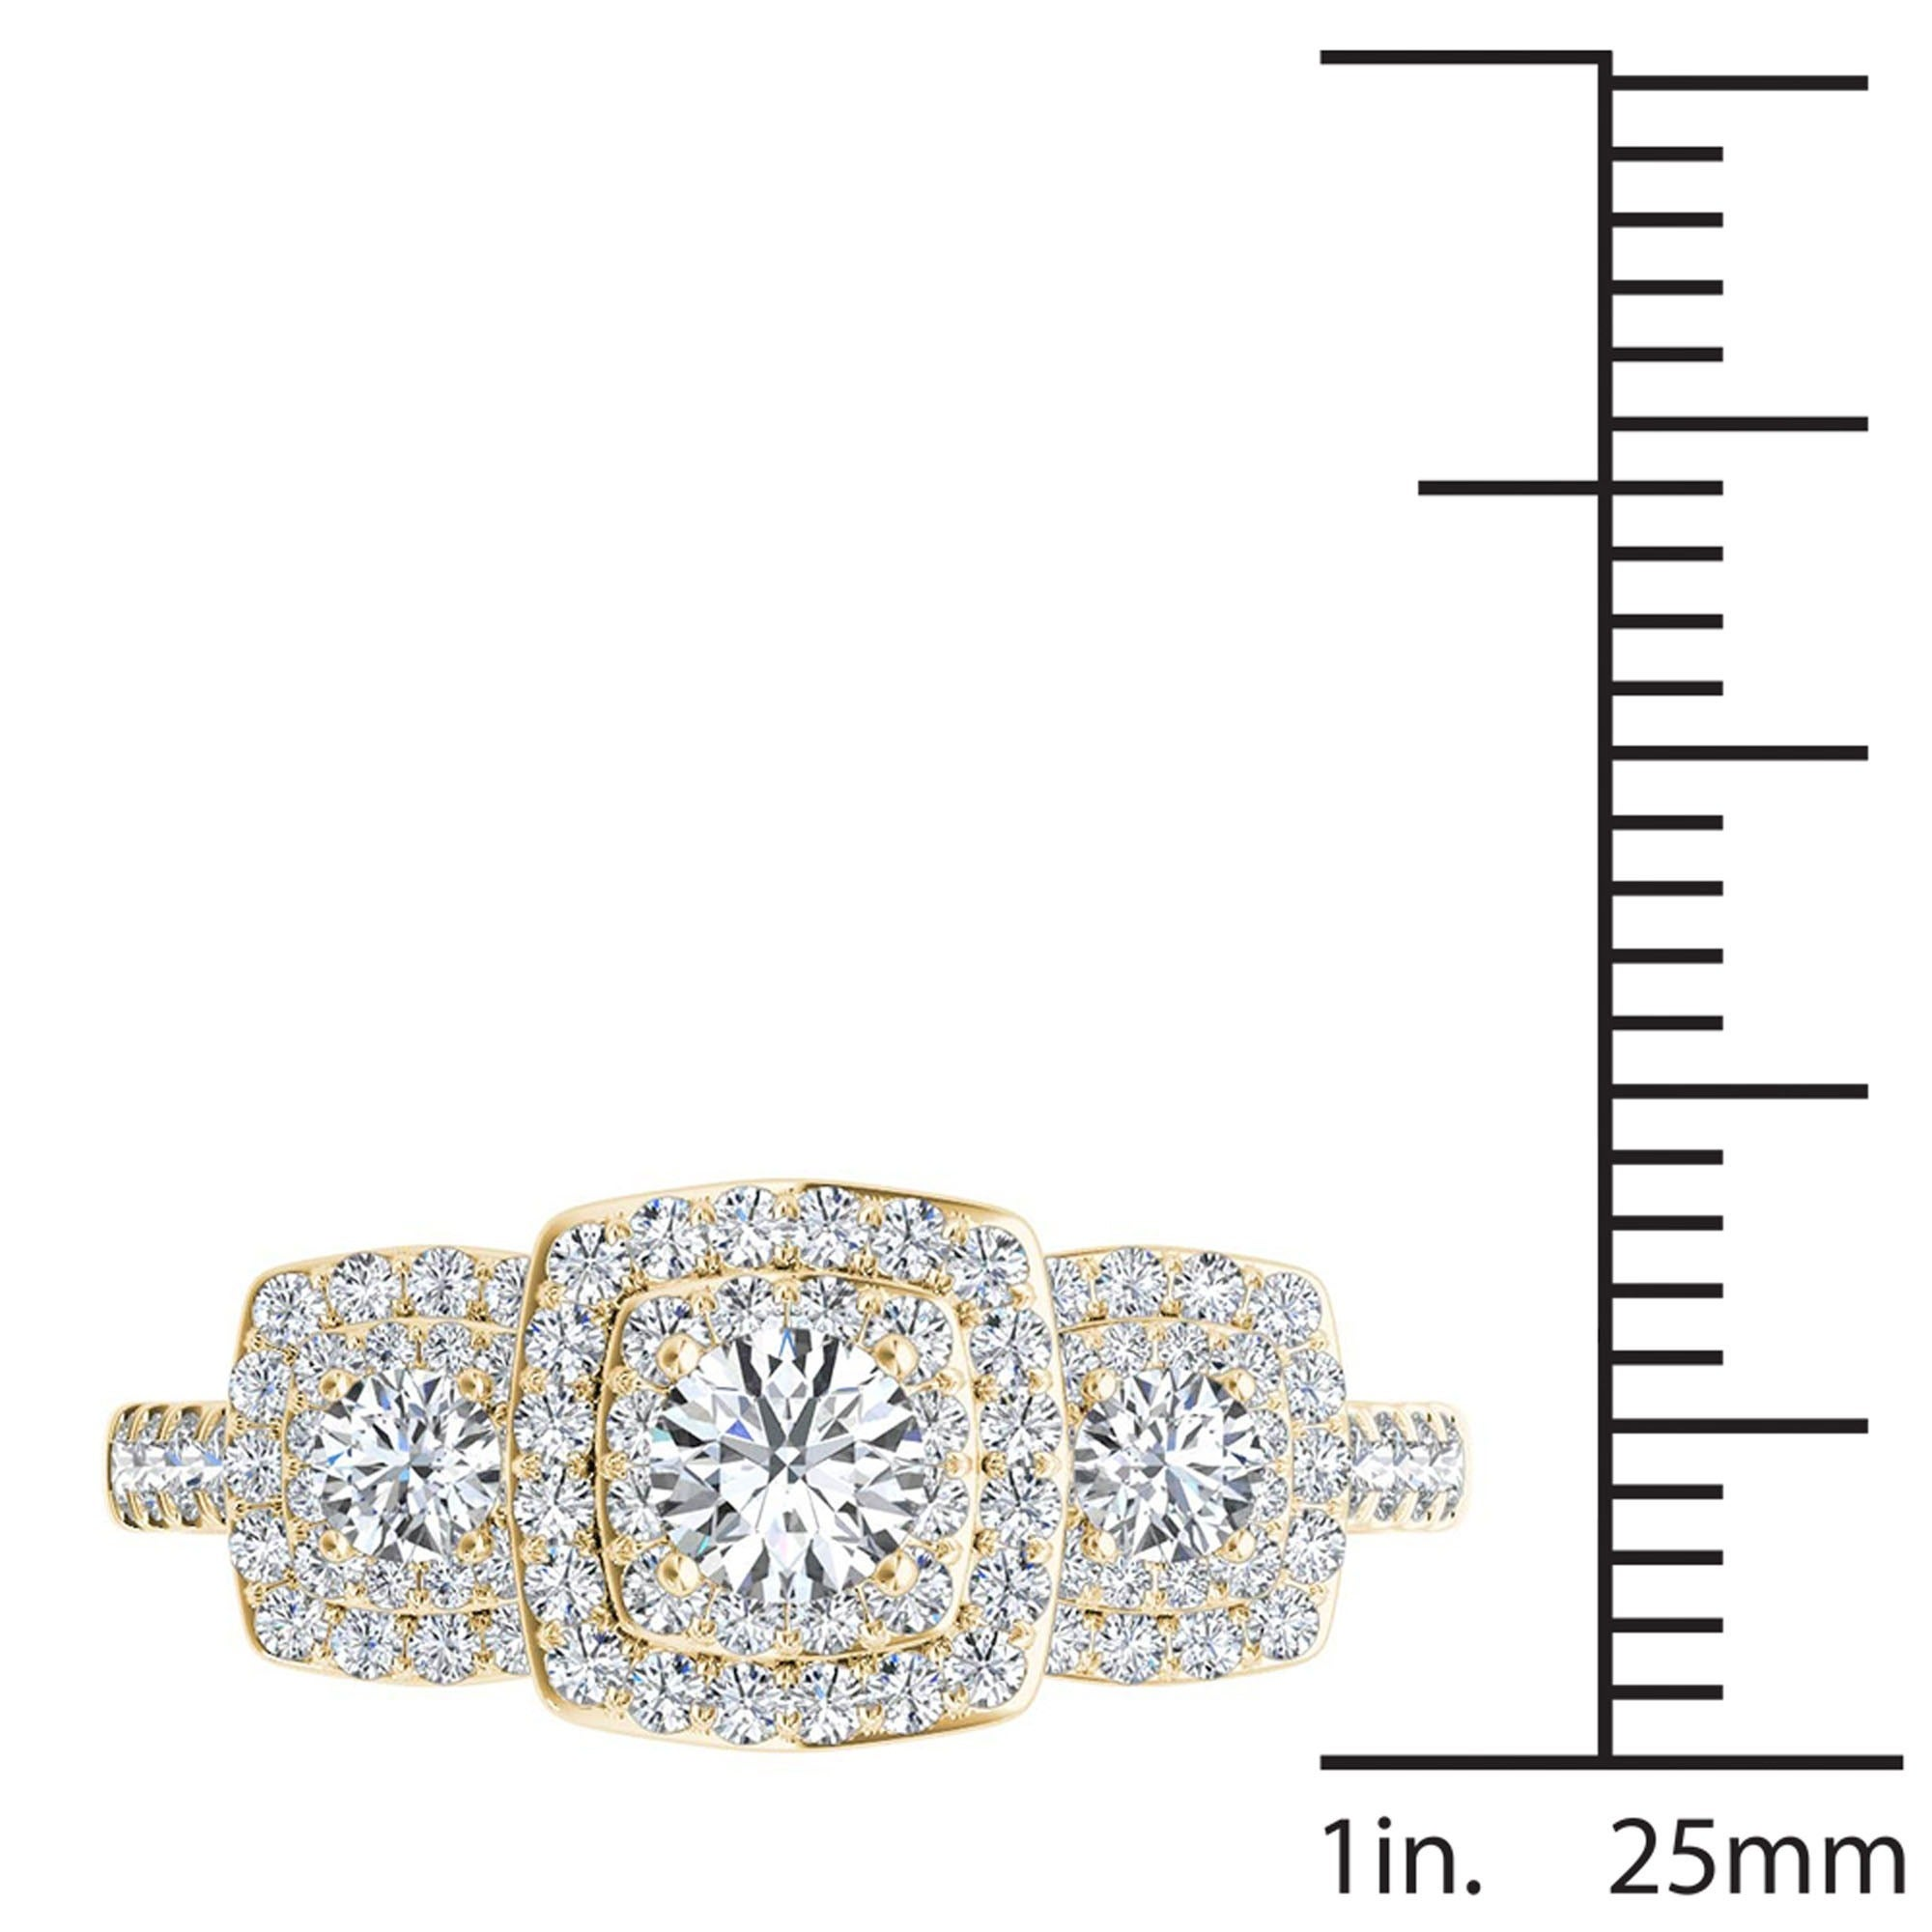 trek round gold one carat shop def with cut brilliant color diamonds halo side stones quality shank split d moissanite vvs and forever center e clarity ring f engagement rose diamond